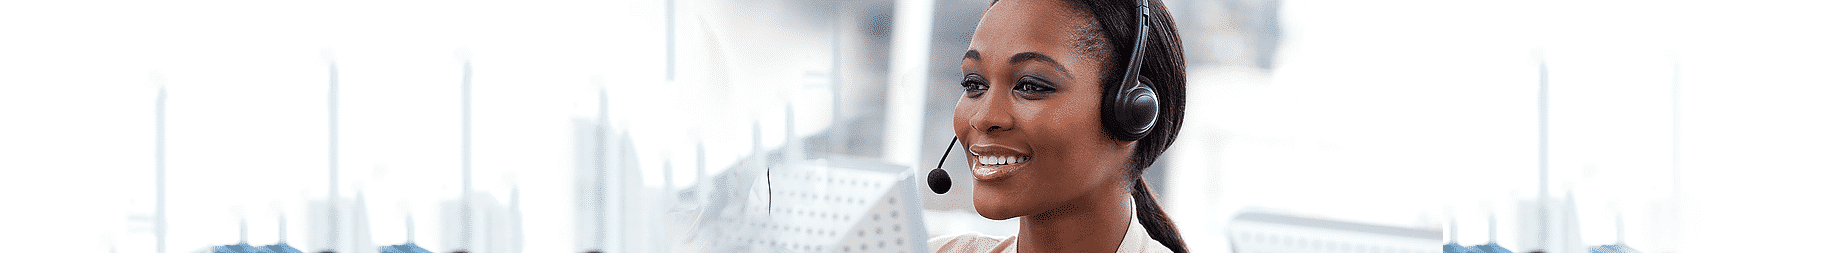 Customer Support in Jamaica | south-africa-banner | Jamaican Call Centers | Jamaica | Outsourcing to Jamaica | Call Centers in Jamaica